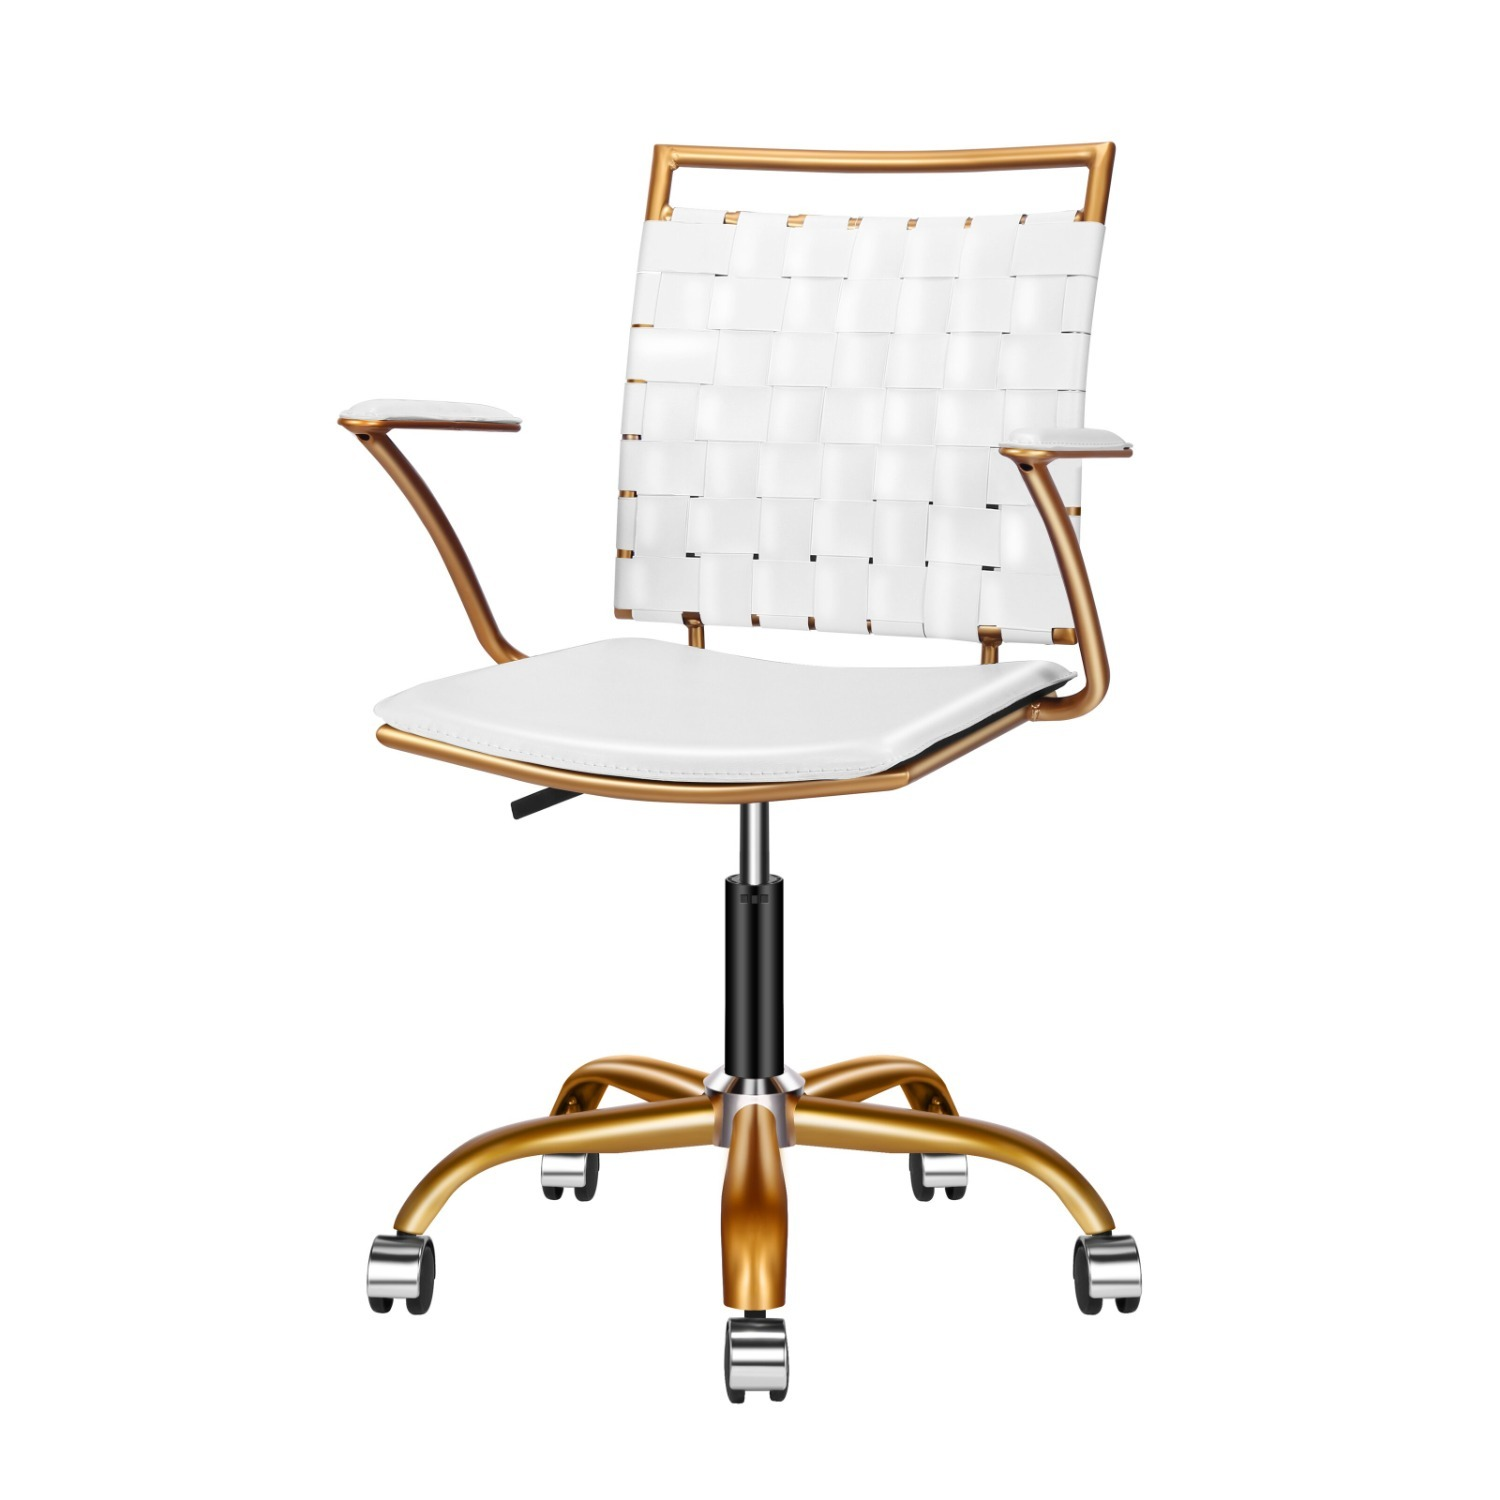 Wayfair Woven White and Gold Desk Chair - image-1